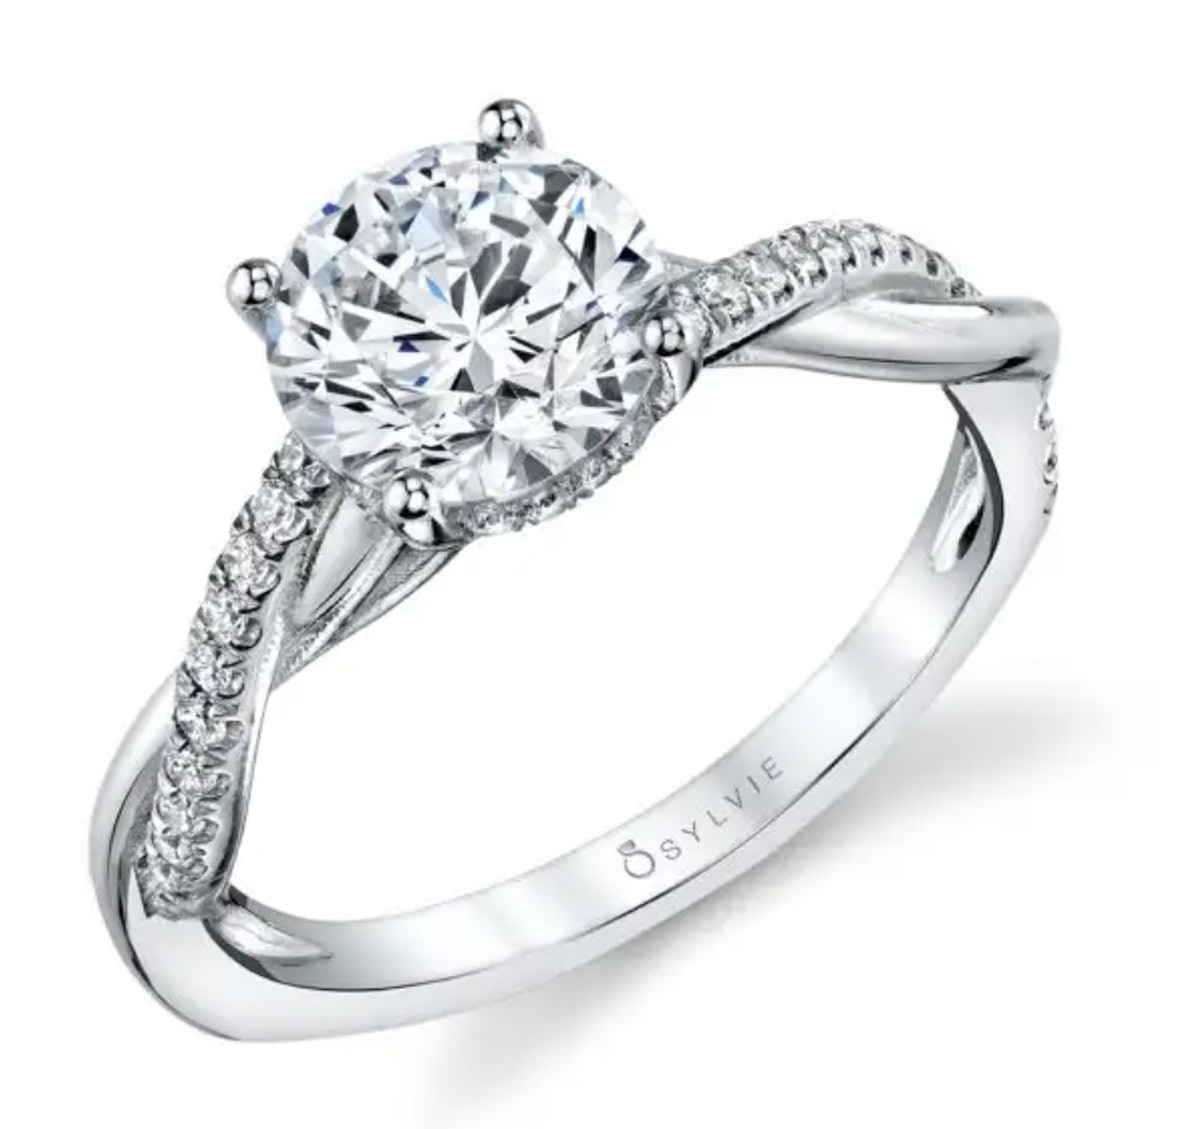 SYLVIE's Spiral Engagement Ring With A Hidden Halo.